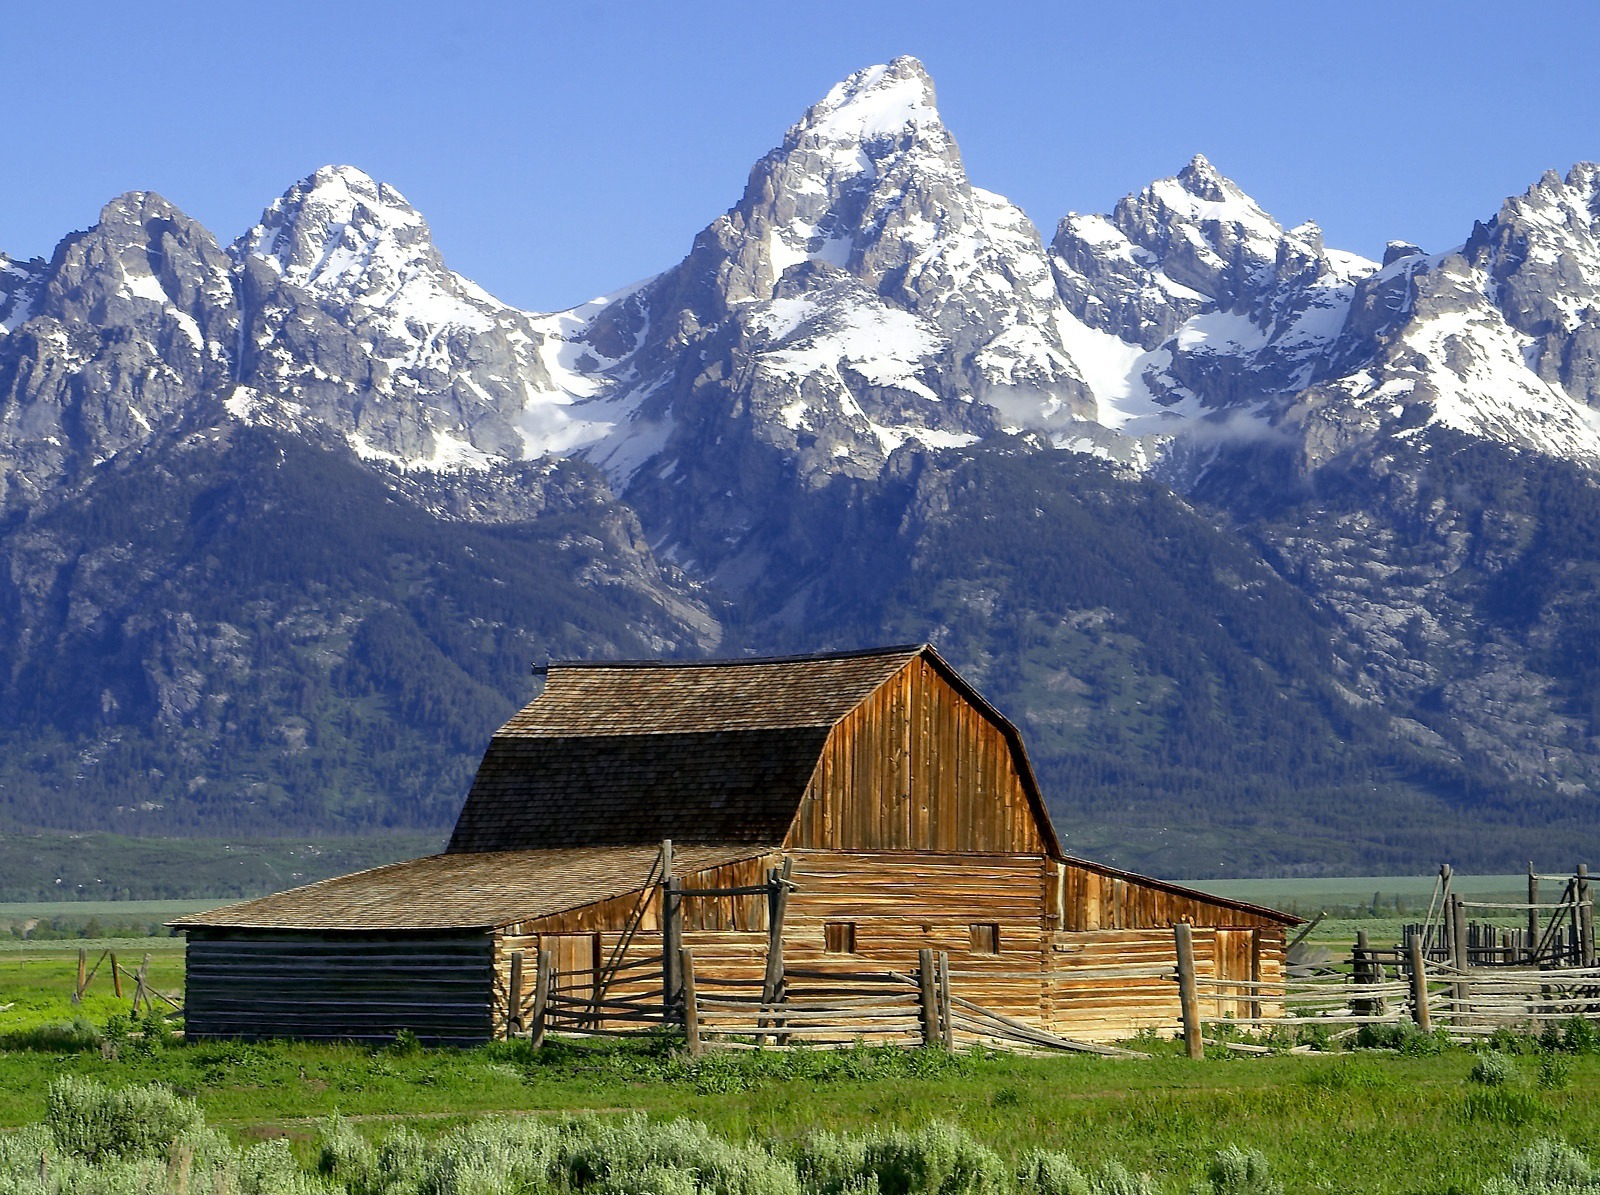 Moulton Barn fronts the Tetons in Grand Teton National Park. Protected lands, wildlife and a healthy environment have fueled Teton County becoming one of the richest counties in America.  A national park that started as a national monument, Grand Teton is a bold example of  the long-term dividends of conservation as opposed to the short-term whims of boom and bust.